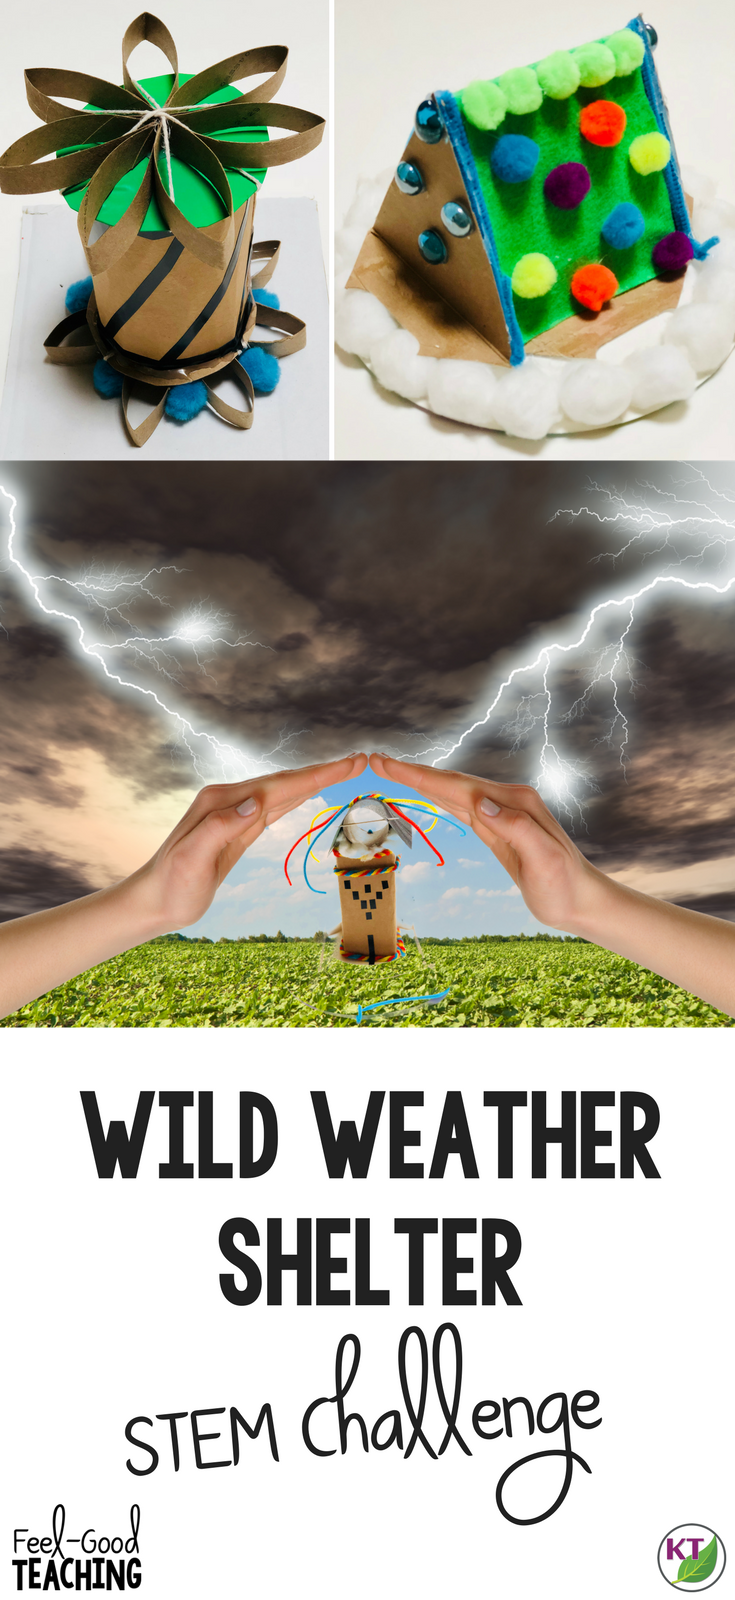 In this weather STEM Challenge activity students apply learning in weather, climate, natural disasters, natural resources & more! Students build shelters to protect against 3-12 weather and/or disaster events. Modifcations for grades 2-8 are included.